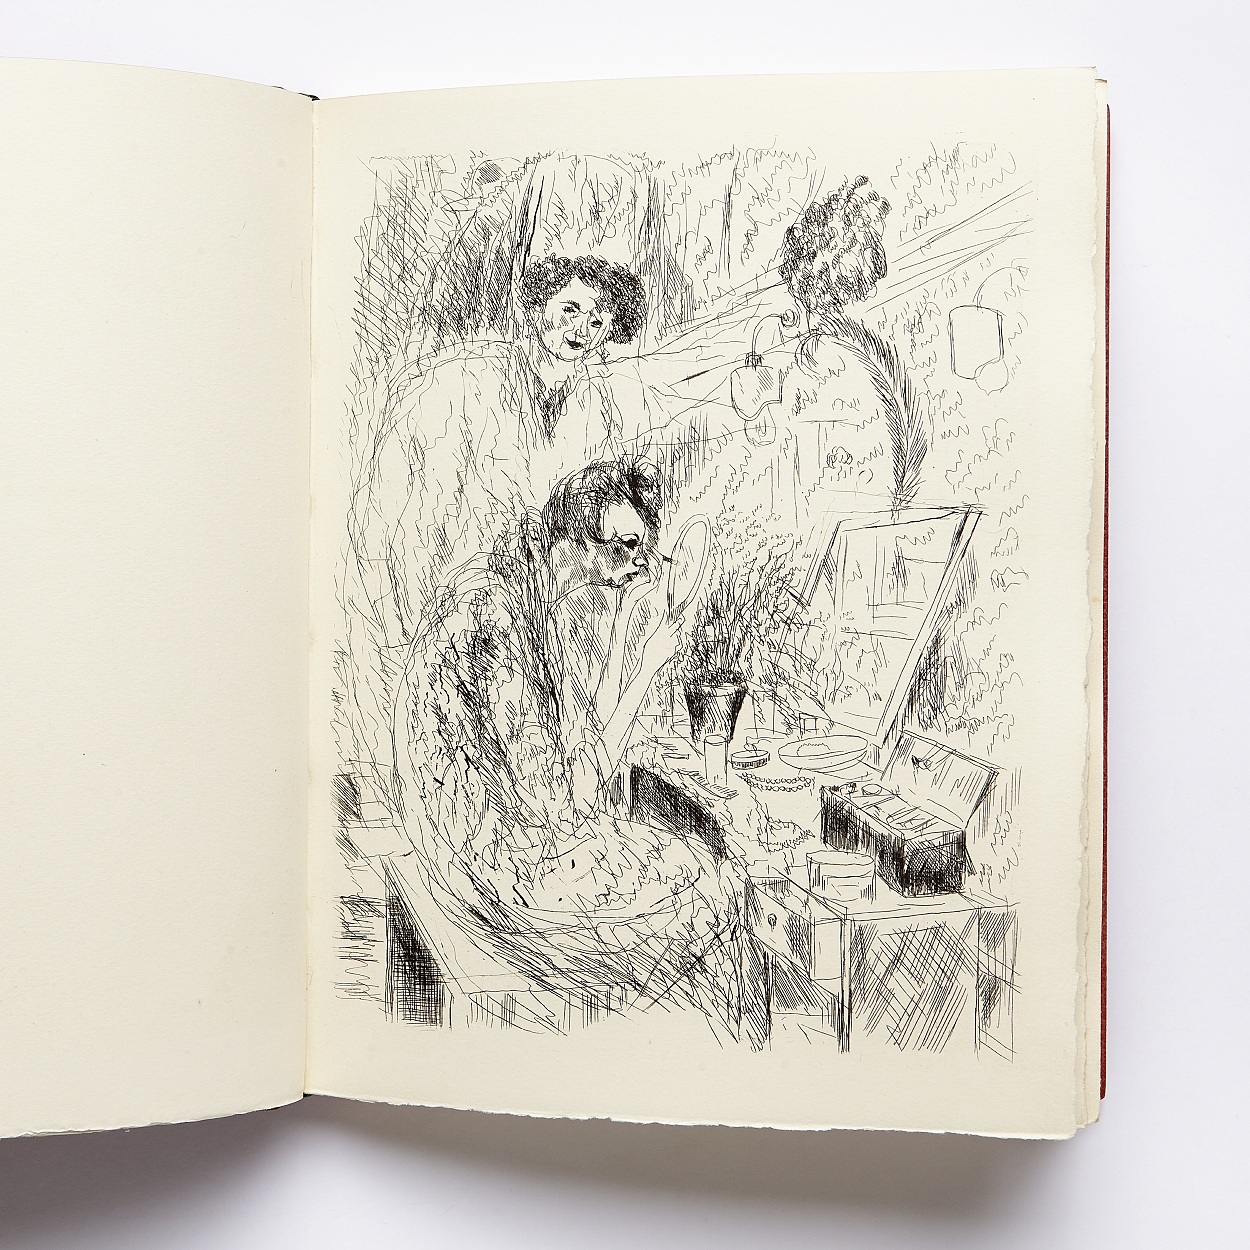 Binding by Olsen with illustrations by de Segonzac